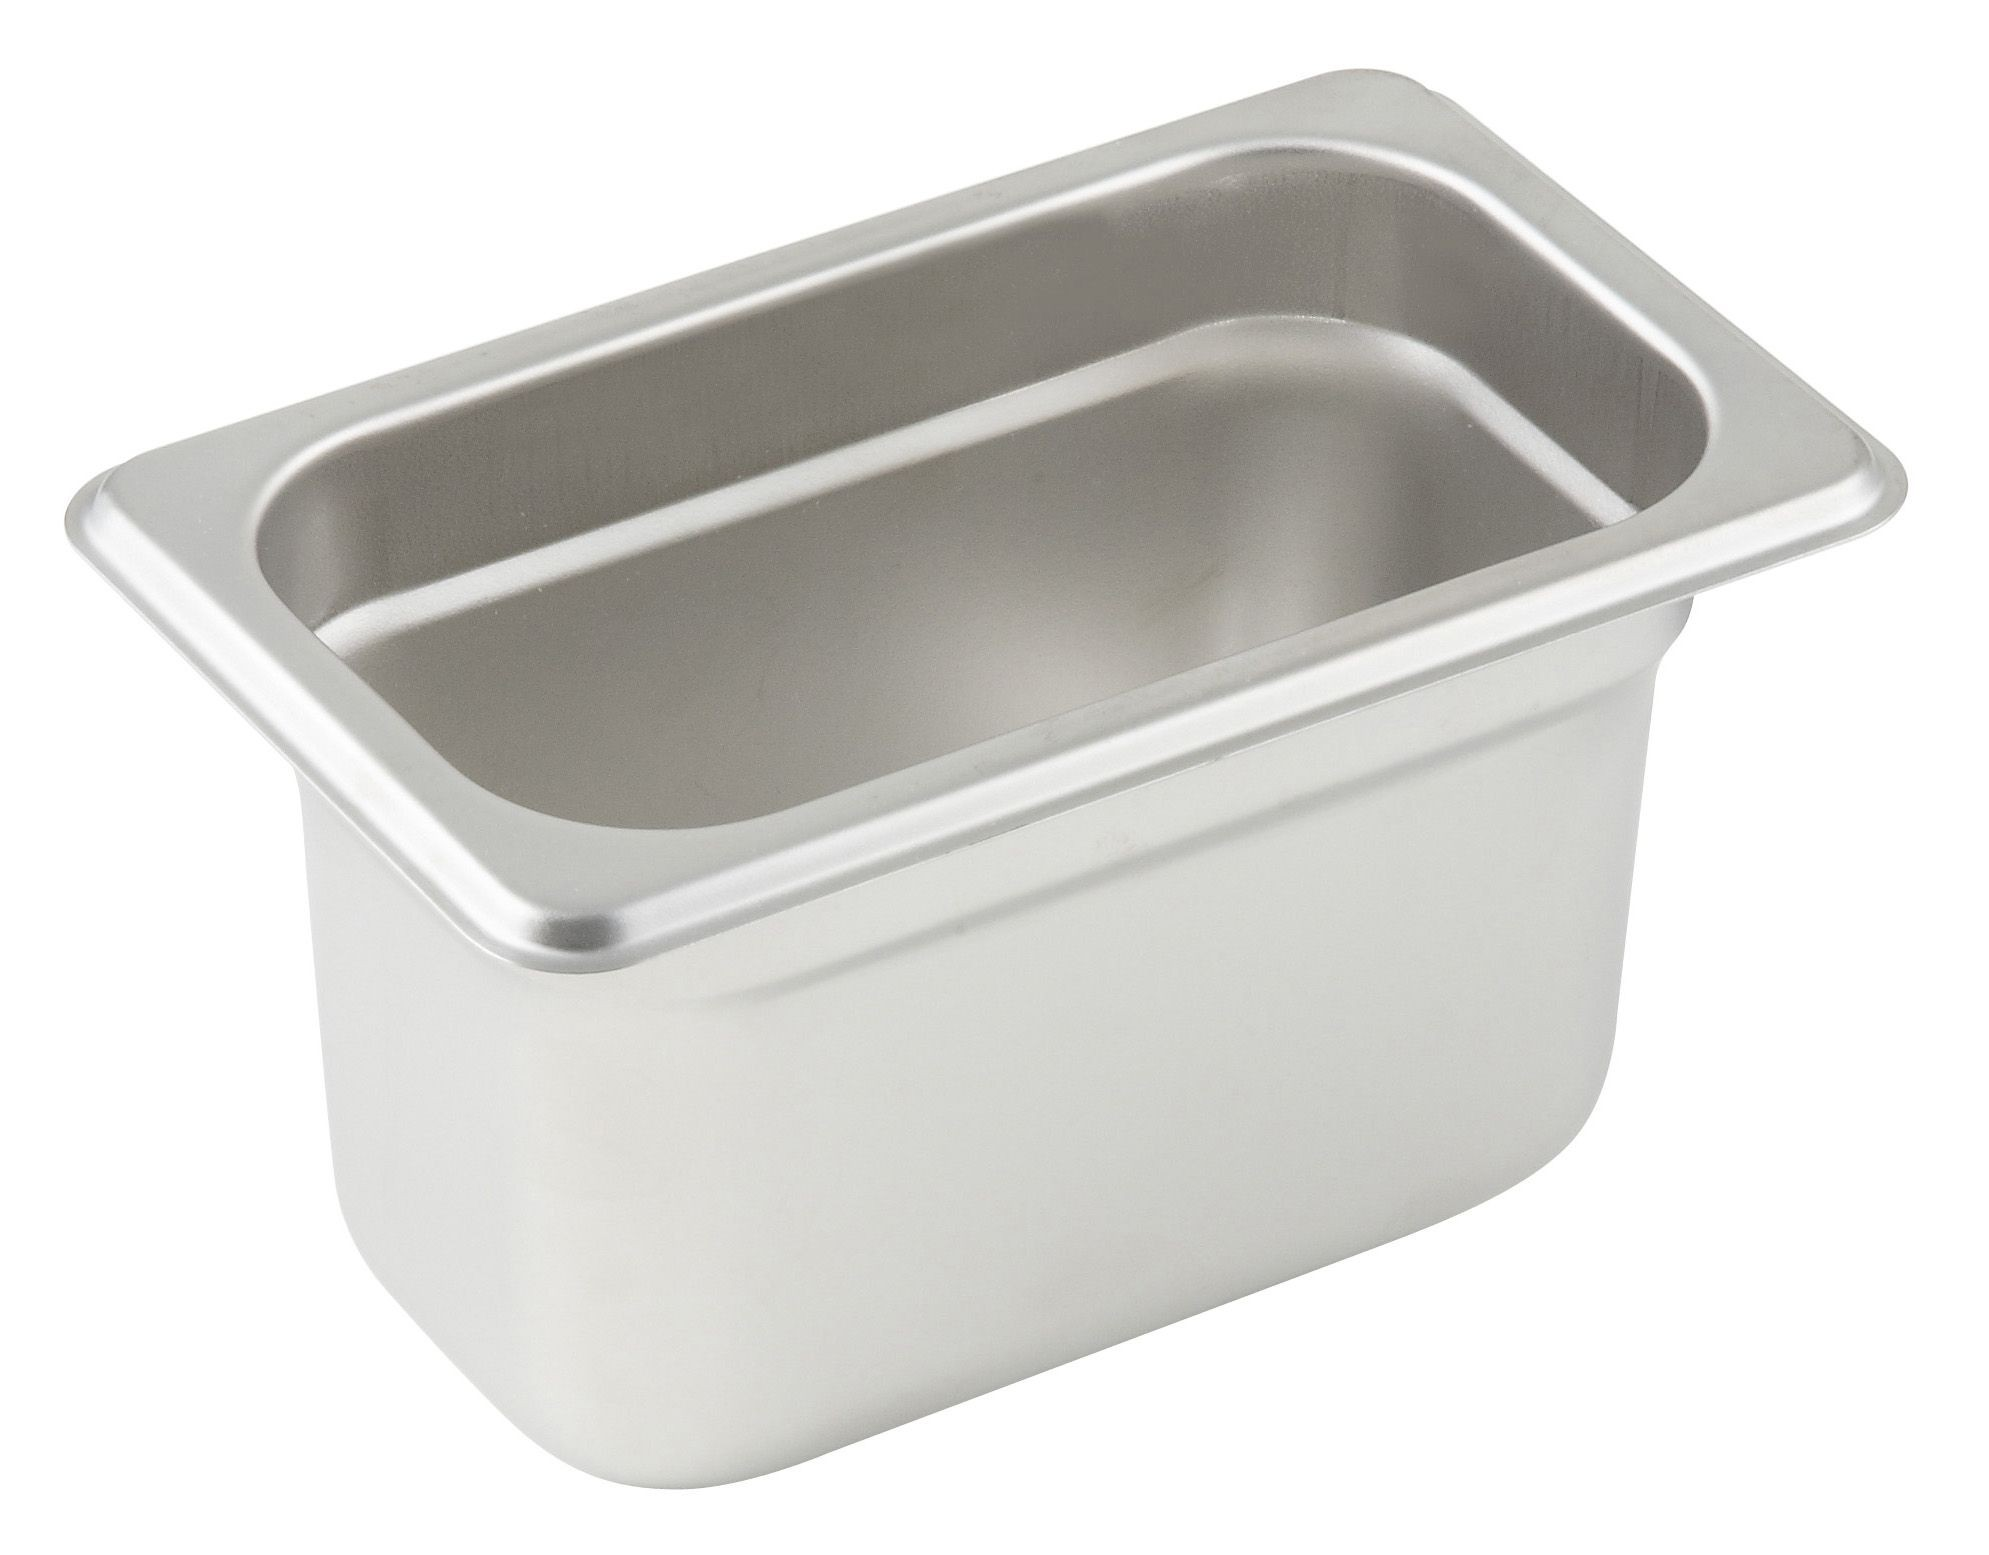 "Winco SPJM-904 1/9 Size Anti-Jam 24 Gauge Steam Table Pan 4"" Deep"